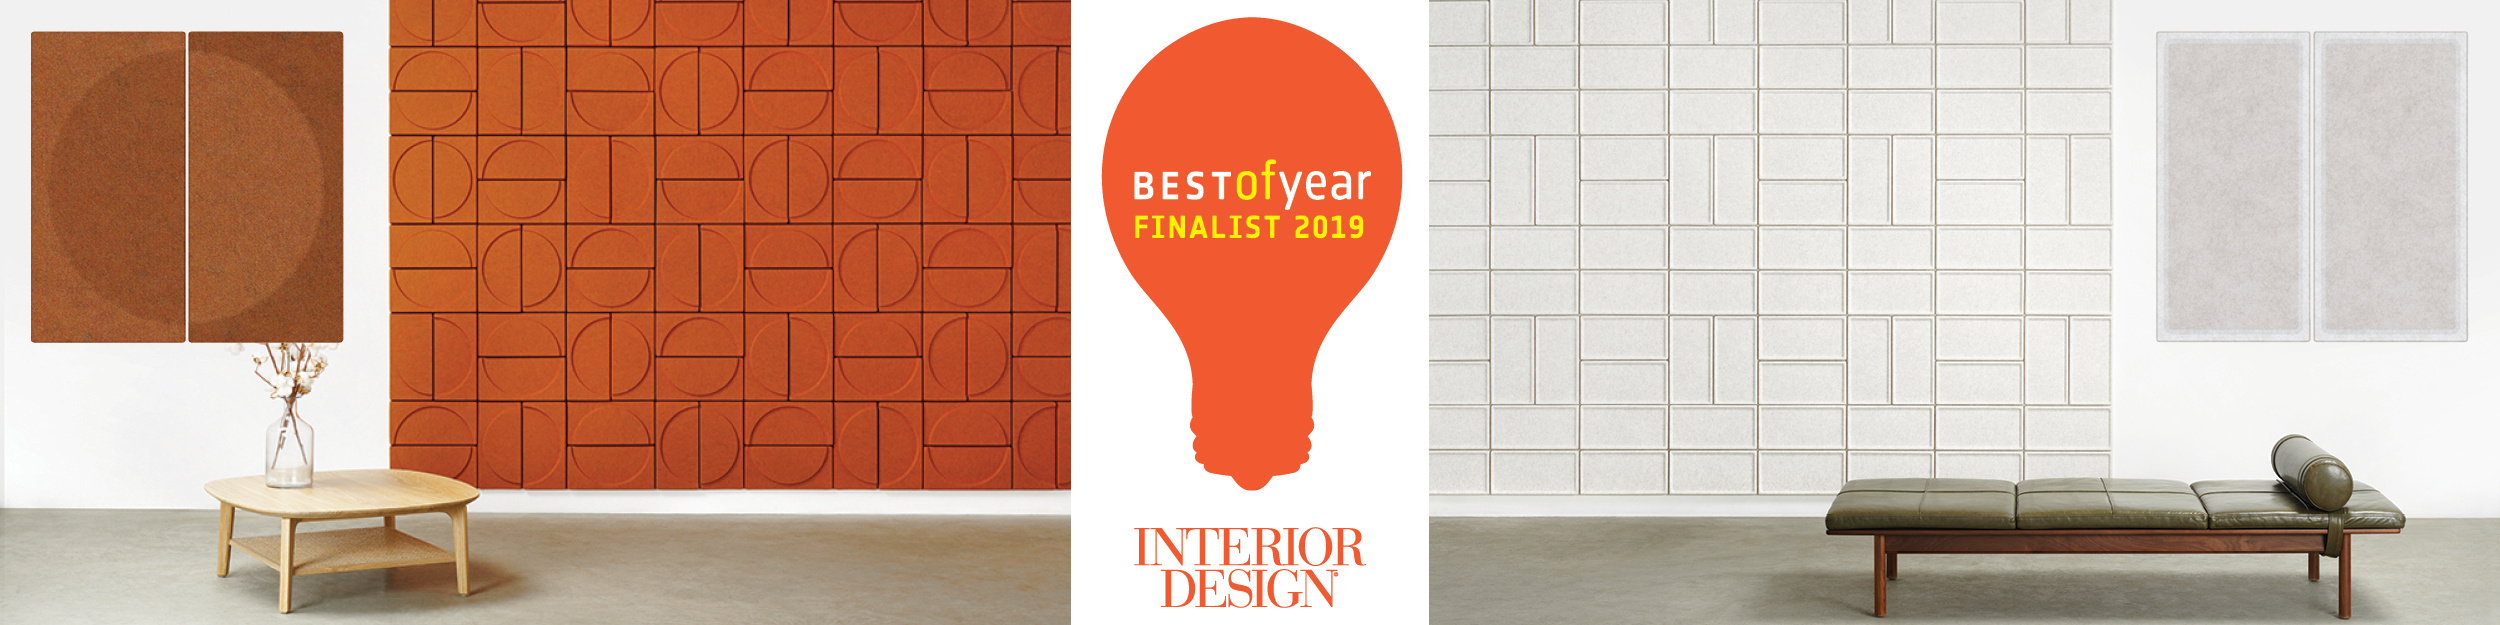 collage featuring acoustic tiles crescent and edge finalists for best of year award